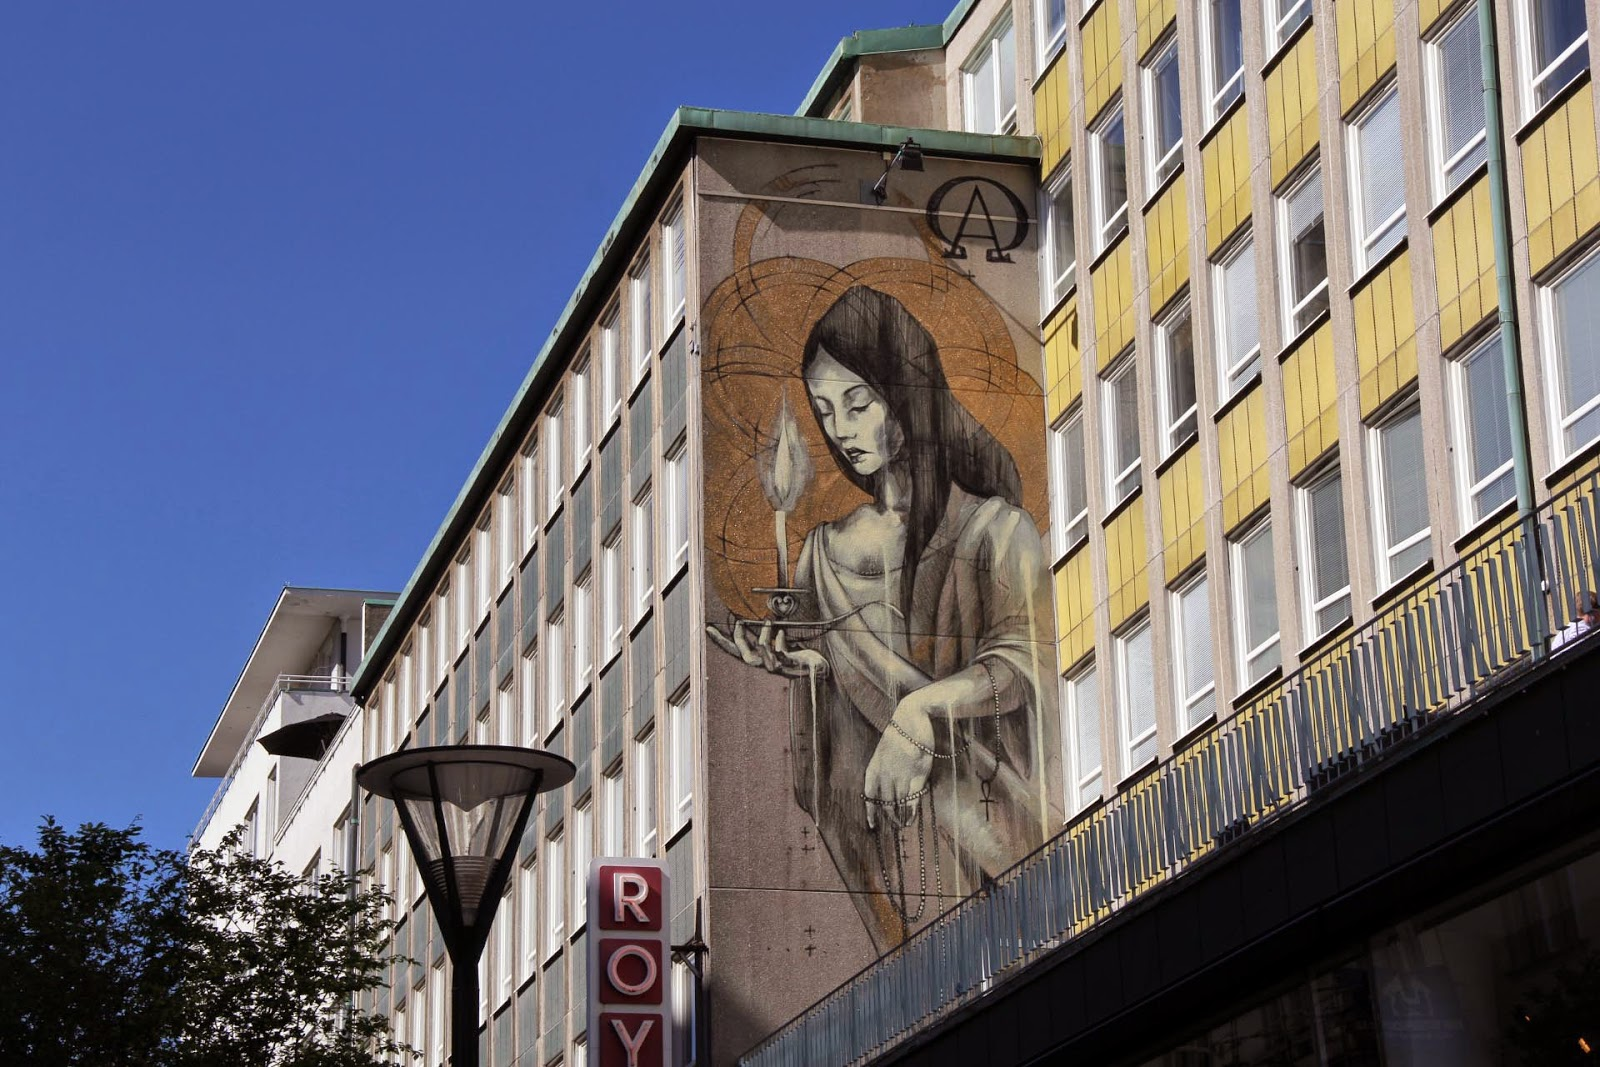 Faith47 is currently in Malmö, Sweden where she was invited to paint for the Artscape Street Art Festival.